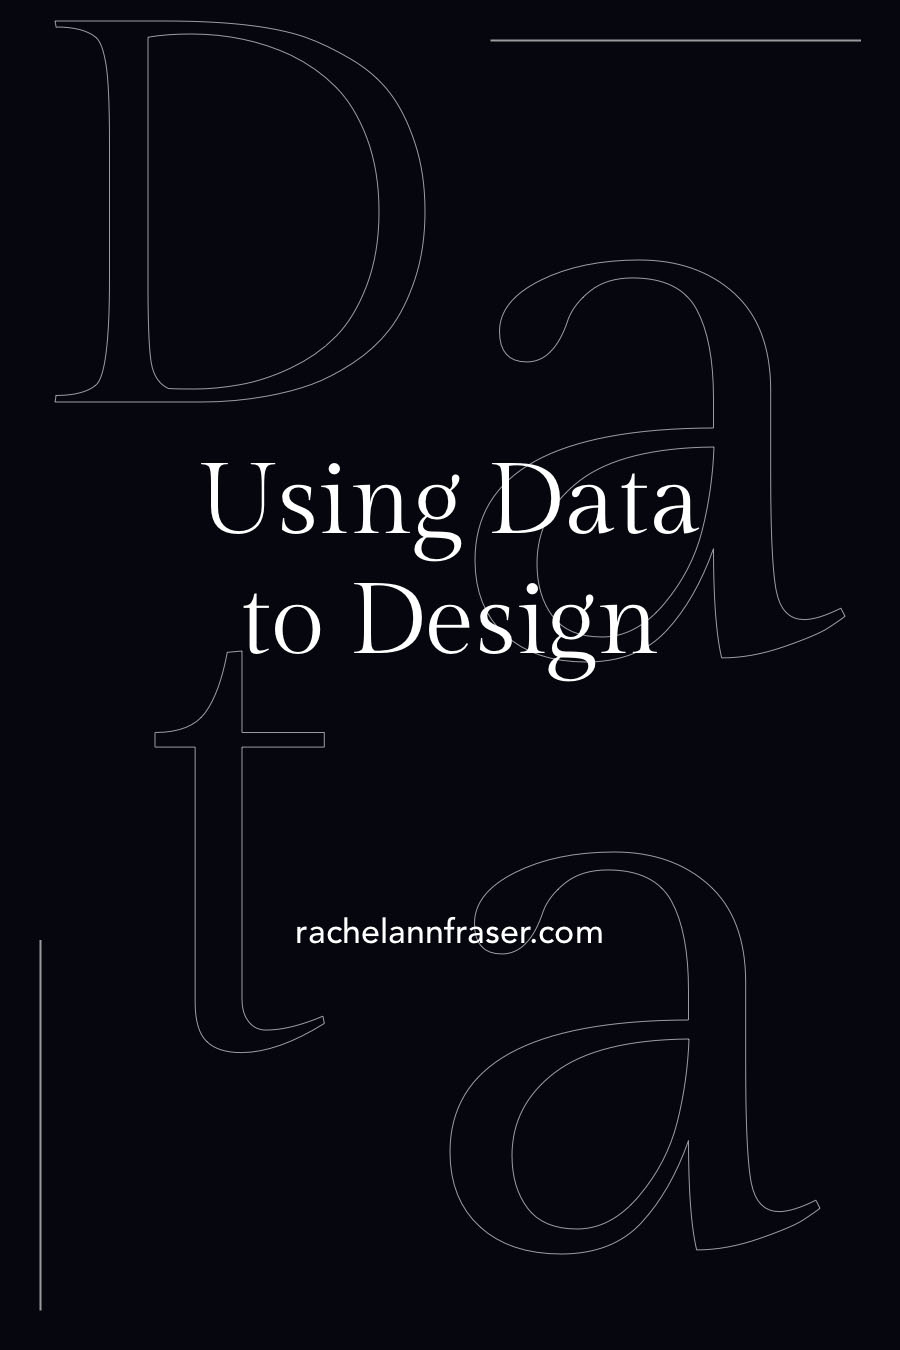 Using Data to Design